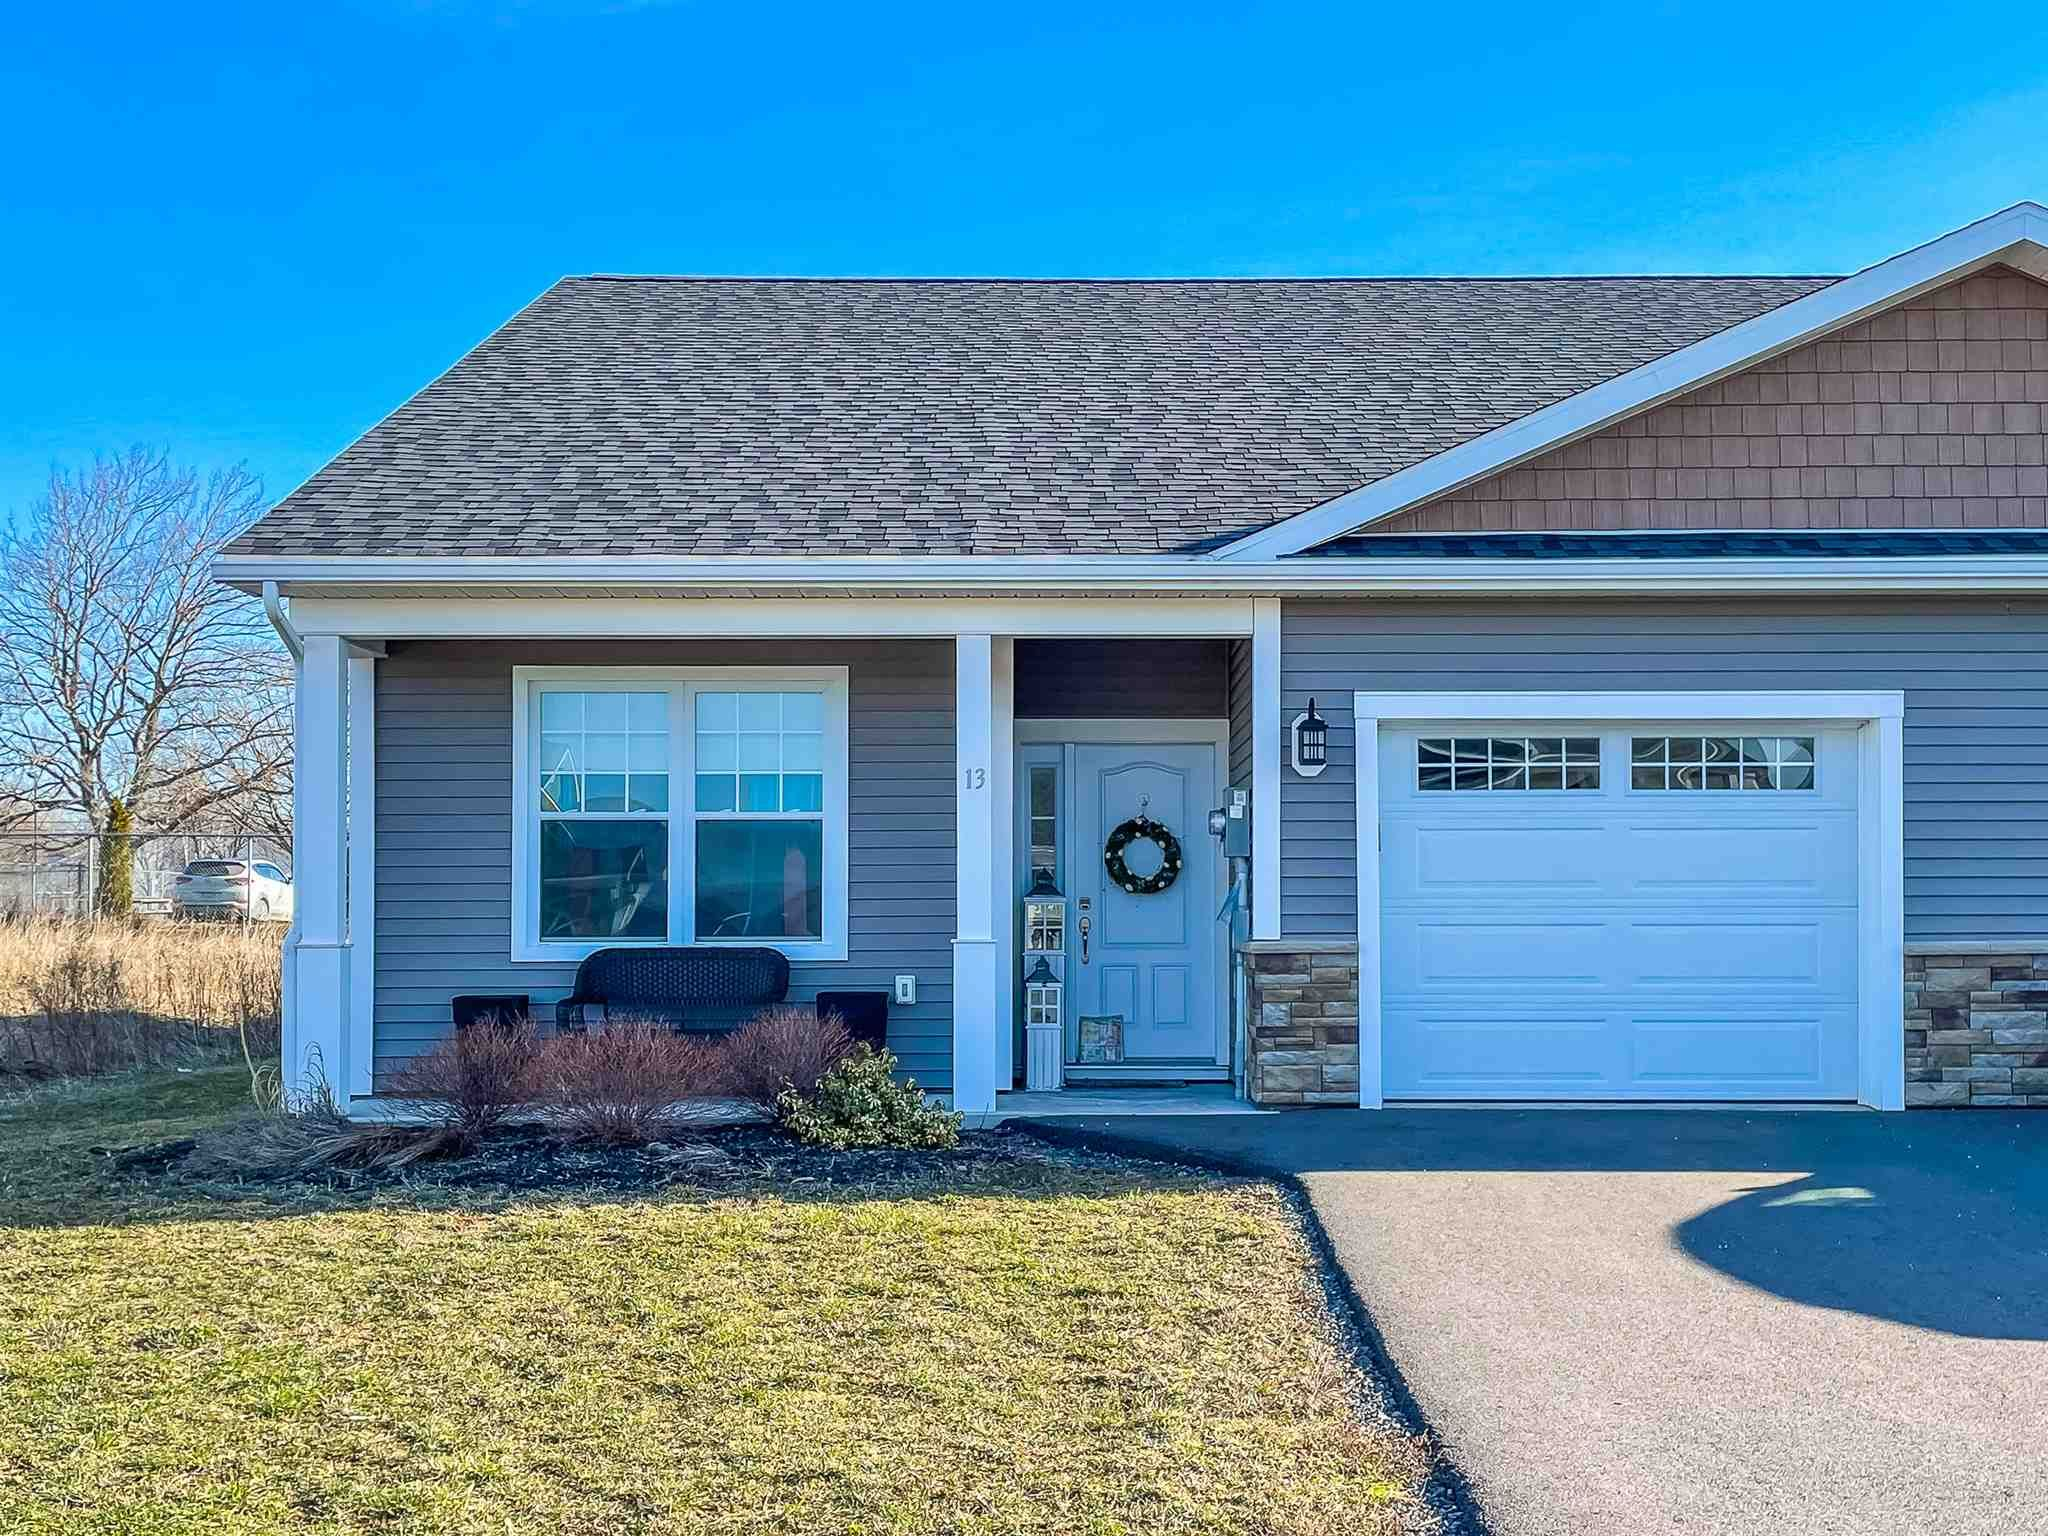 Main Photo: 13 Mackinnon Court in Kentville: 404-Kings County Residential for sale (Annapolis Valley)  : MLS®# 202107288